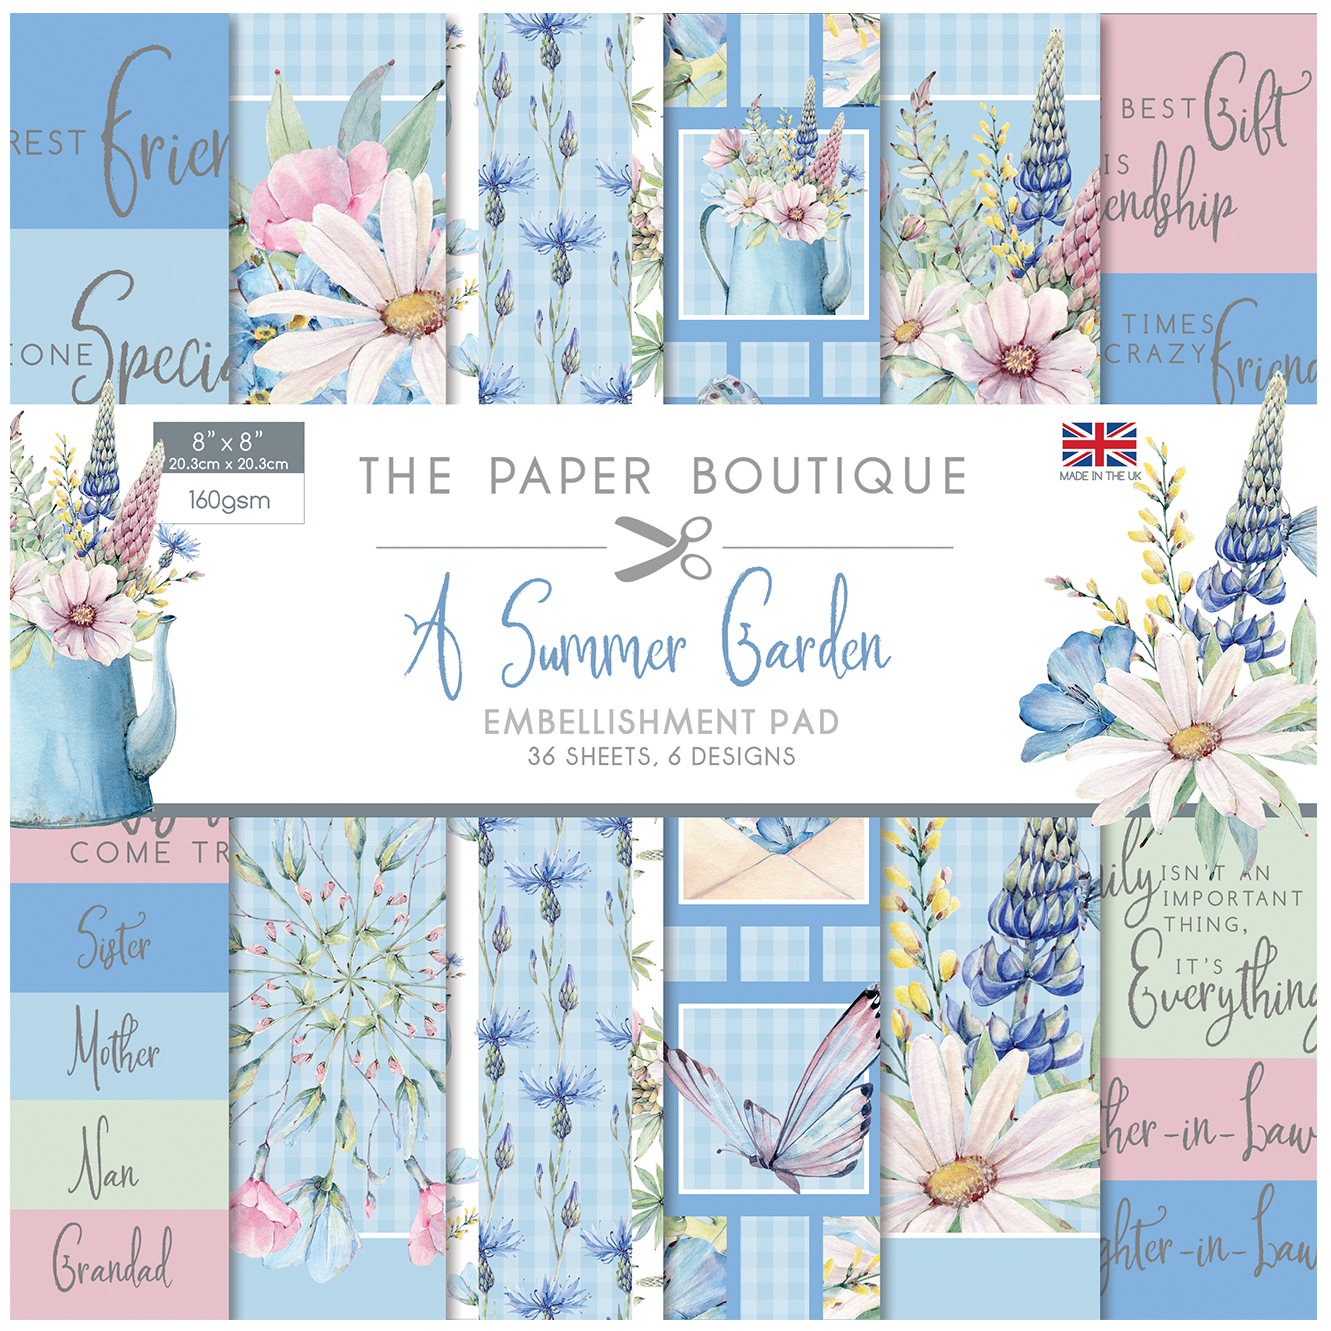 The Paper Boutique A Summer Garden 8″ x 8″ Embellishment Pad